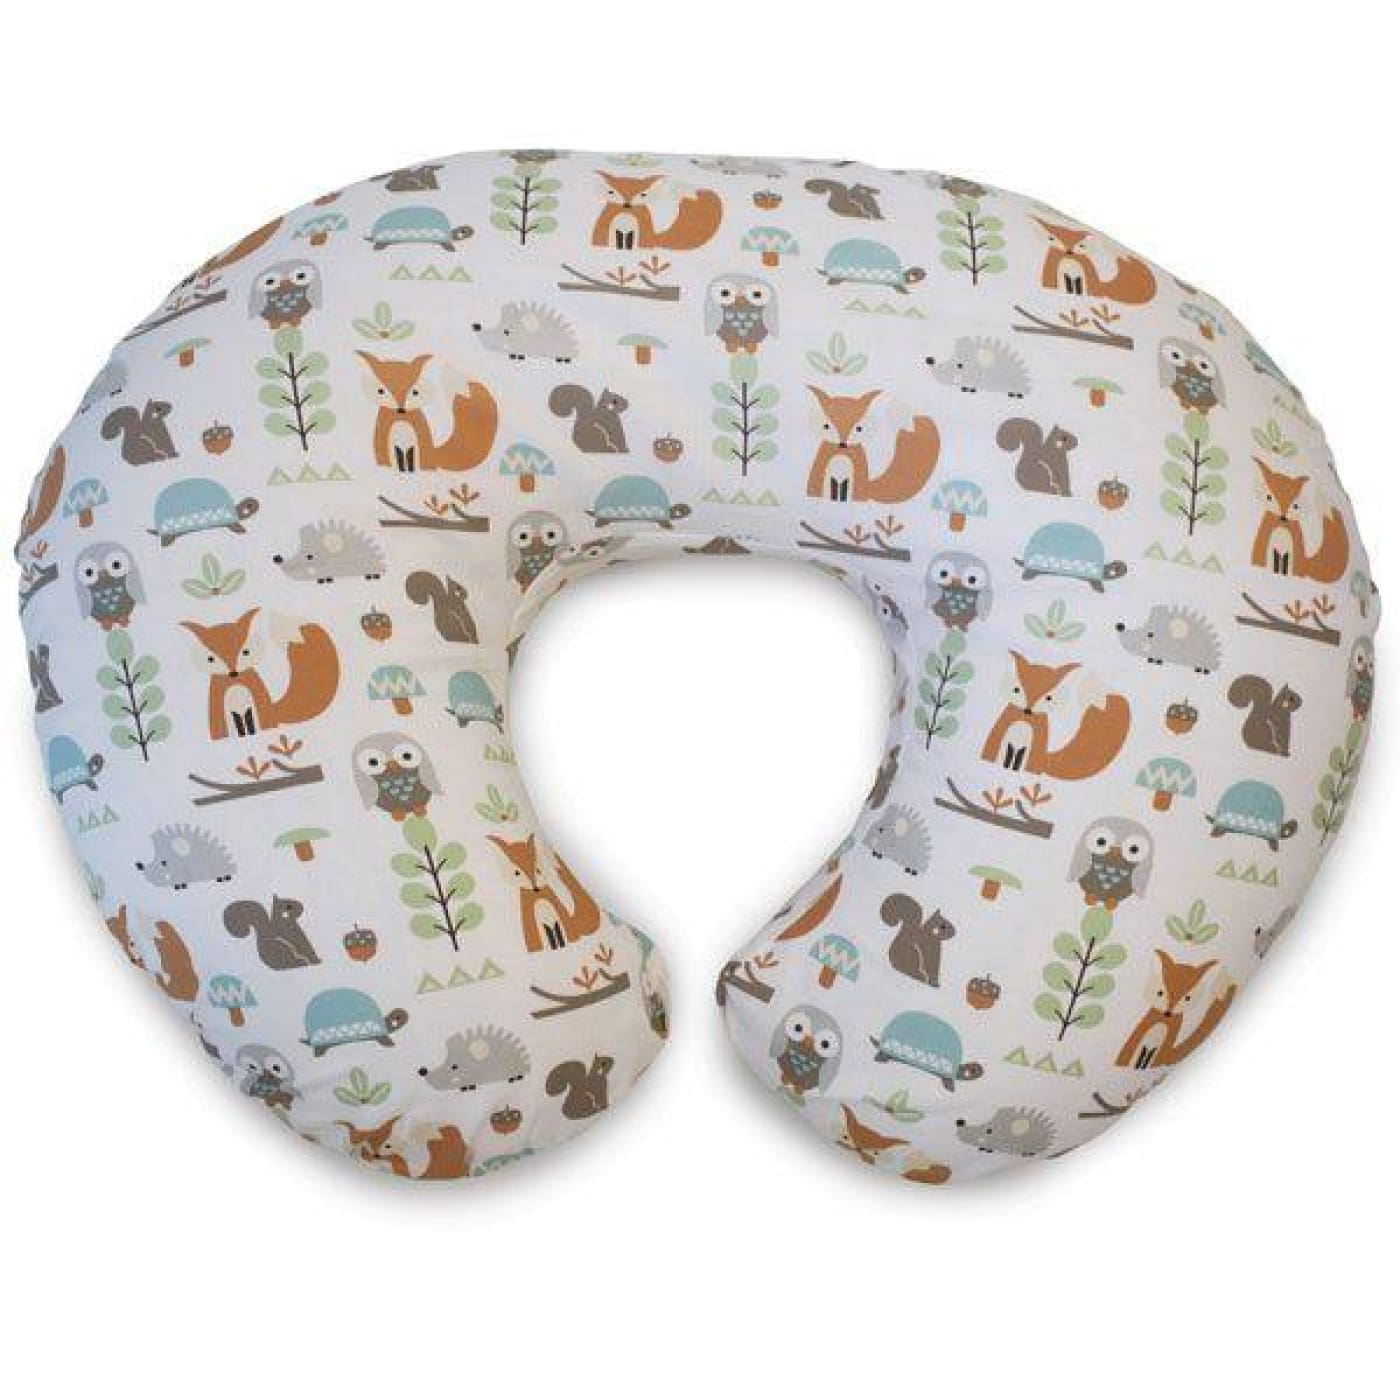 Chicco Boppy Pillow - Modern Woodland - Modern Woodland - NURSING & FEEDING - NURSING PILLOWS/COVERS